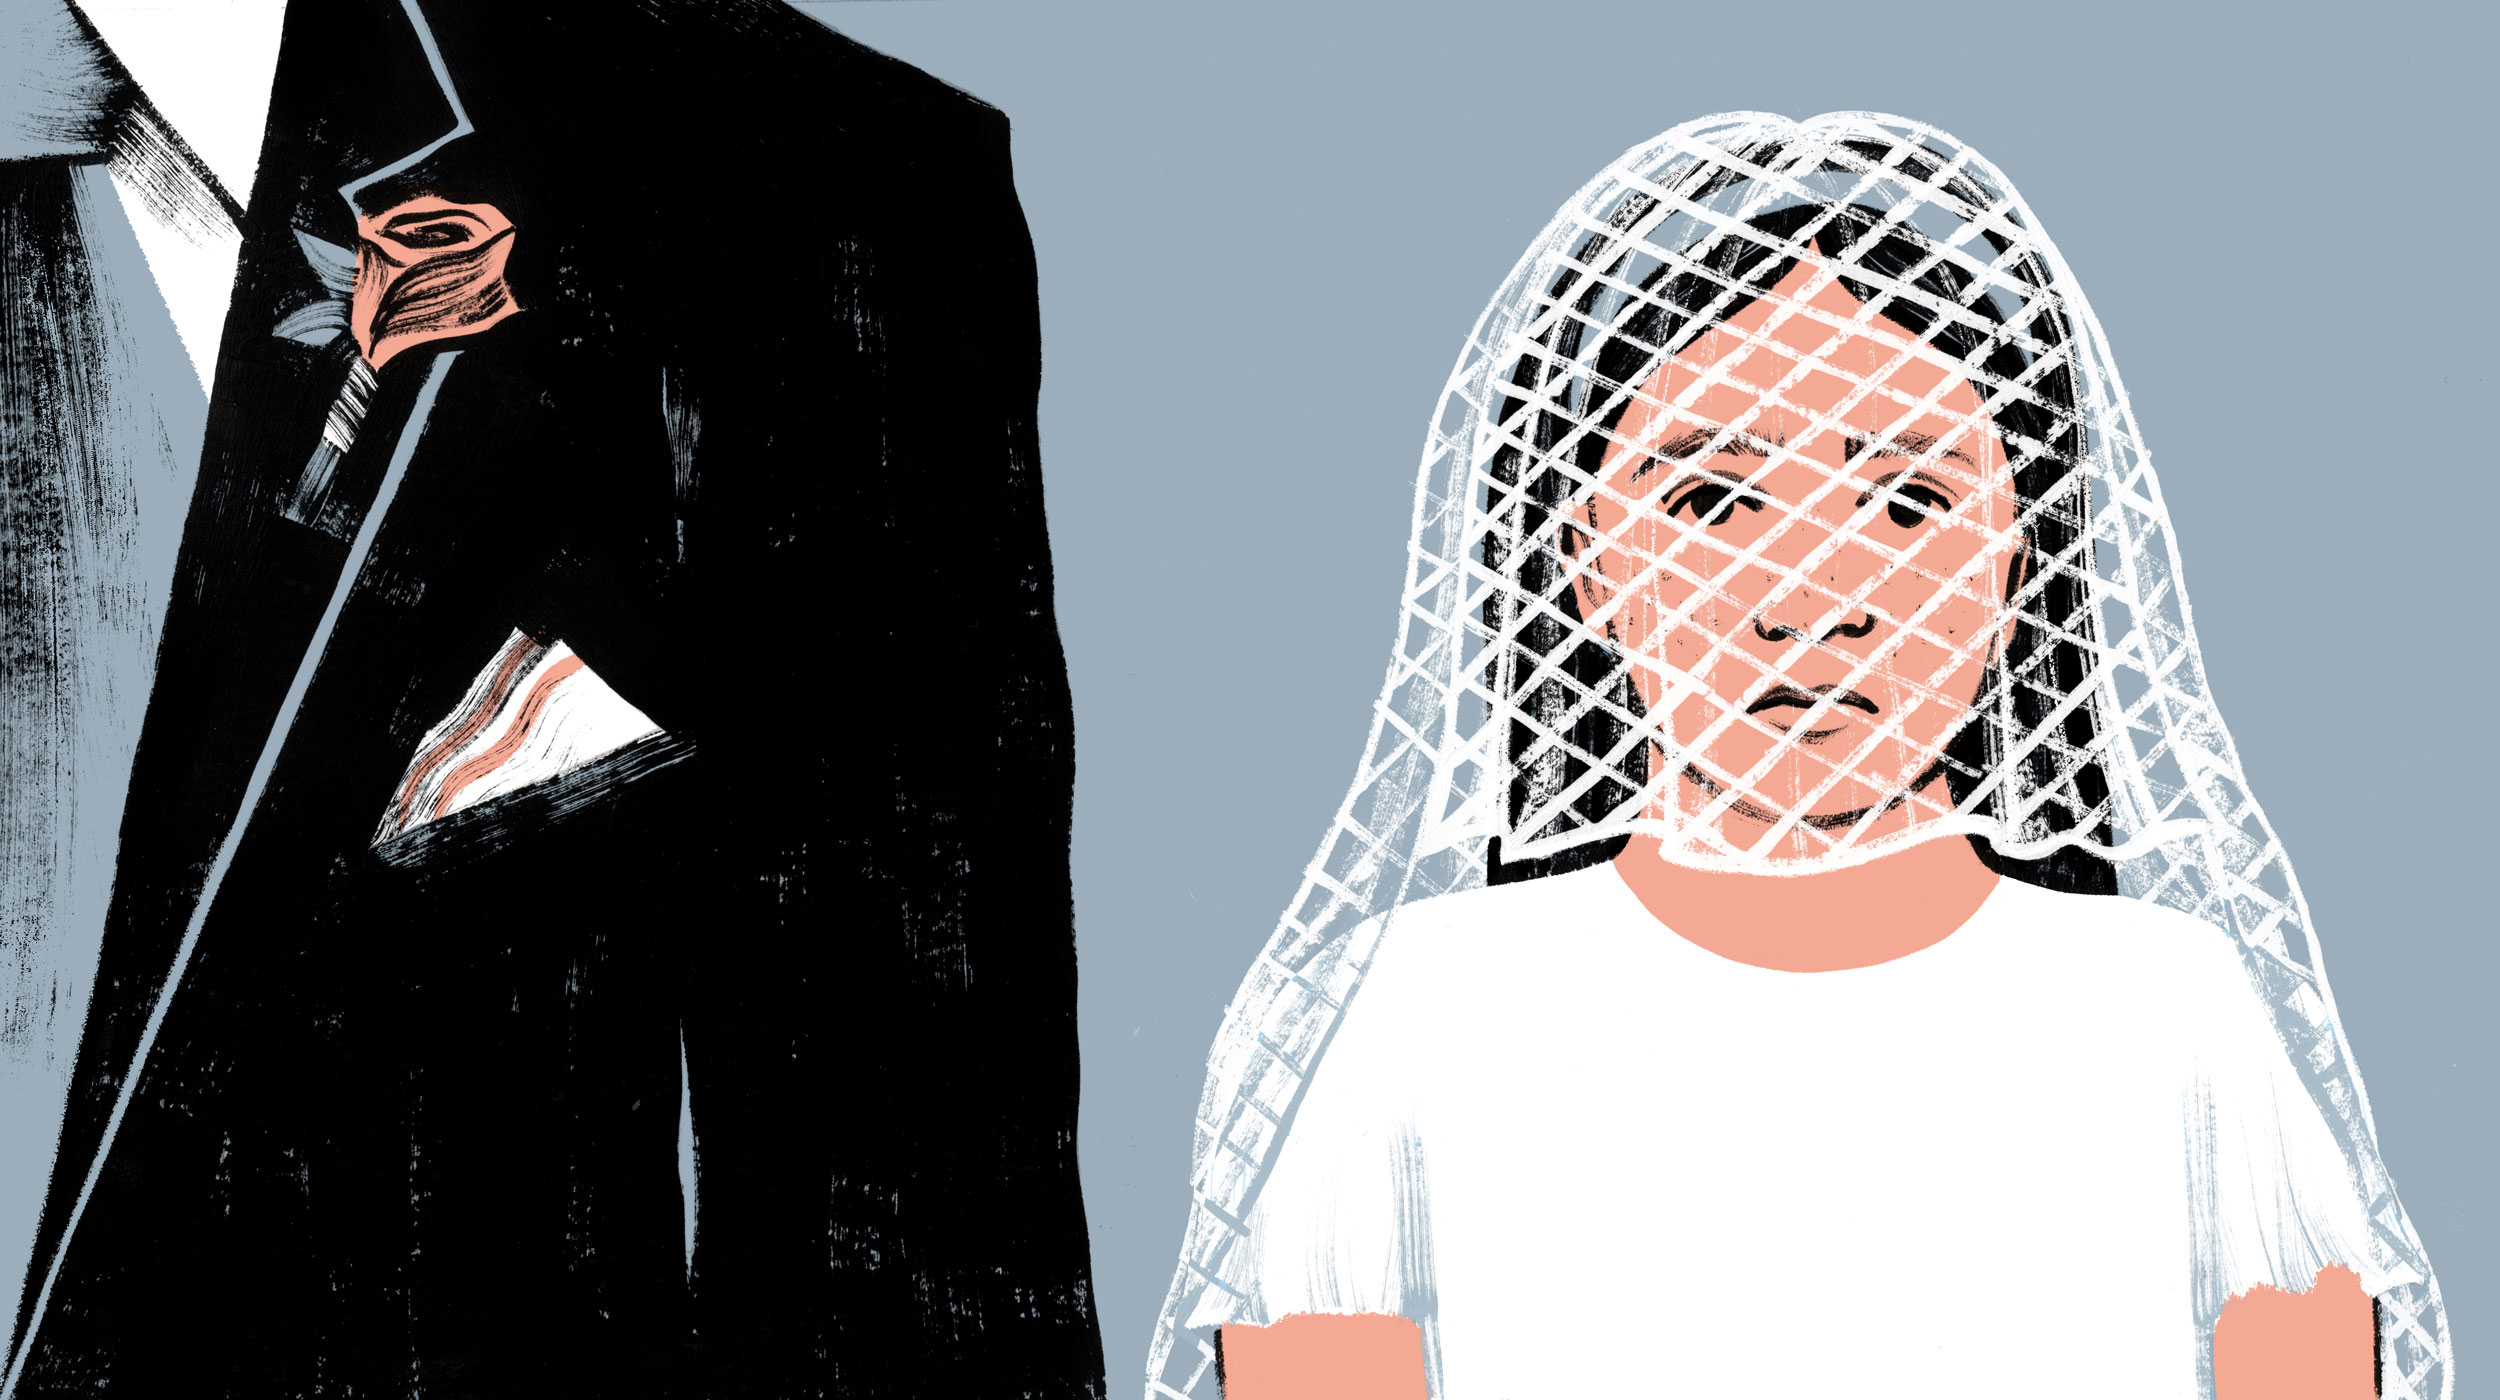 UNFPA: End Child Marriage and Treat Women and Girls Equally